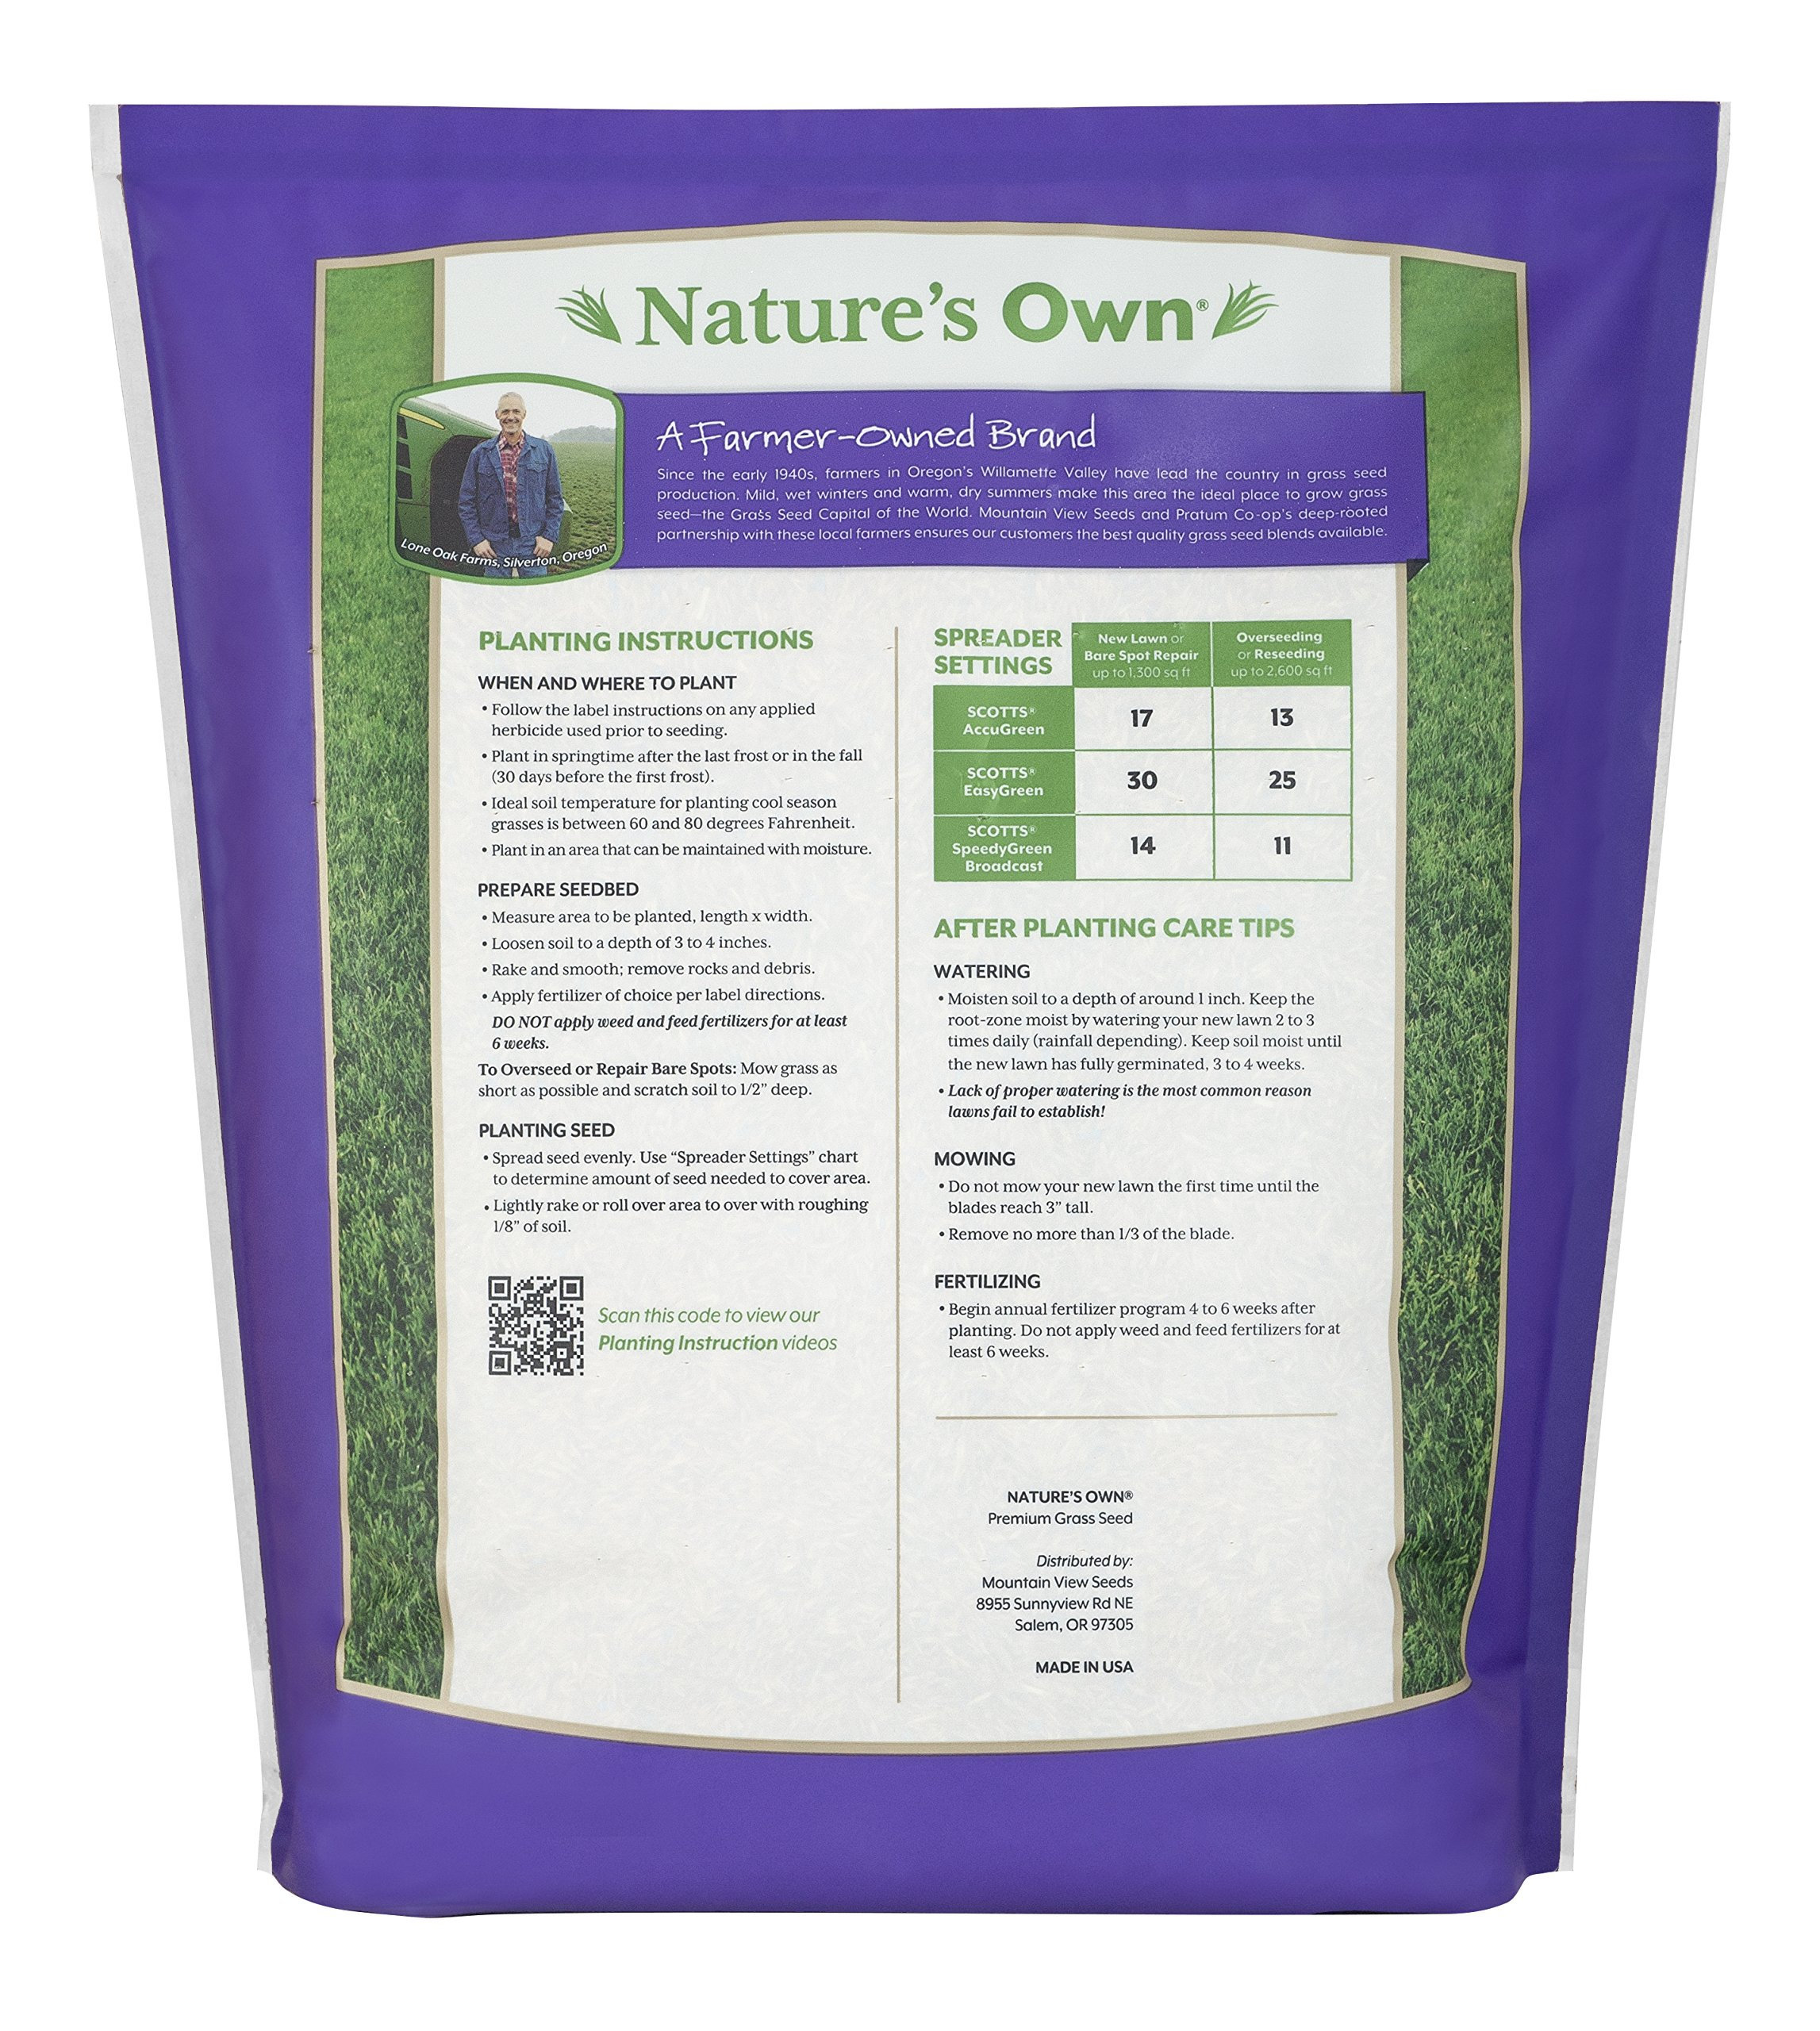 Mountain View Seeds Natures Own Pacific Northwest Mix Grass Seed, 8-pounds by Mountain View Seed (Image #2)